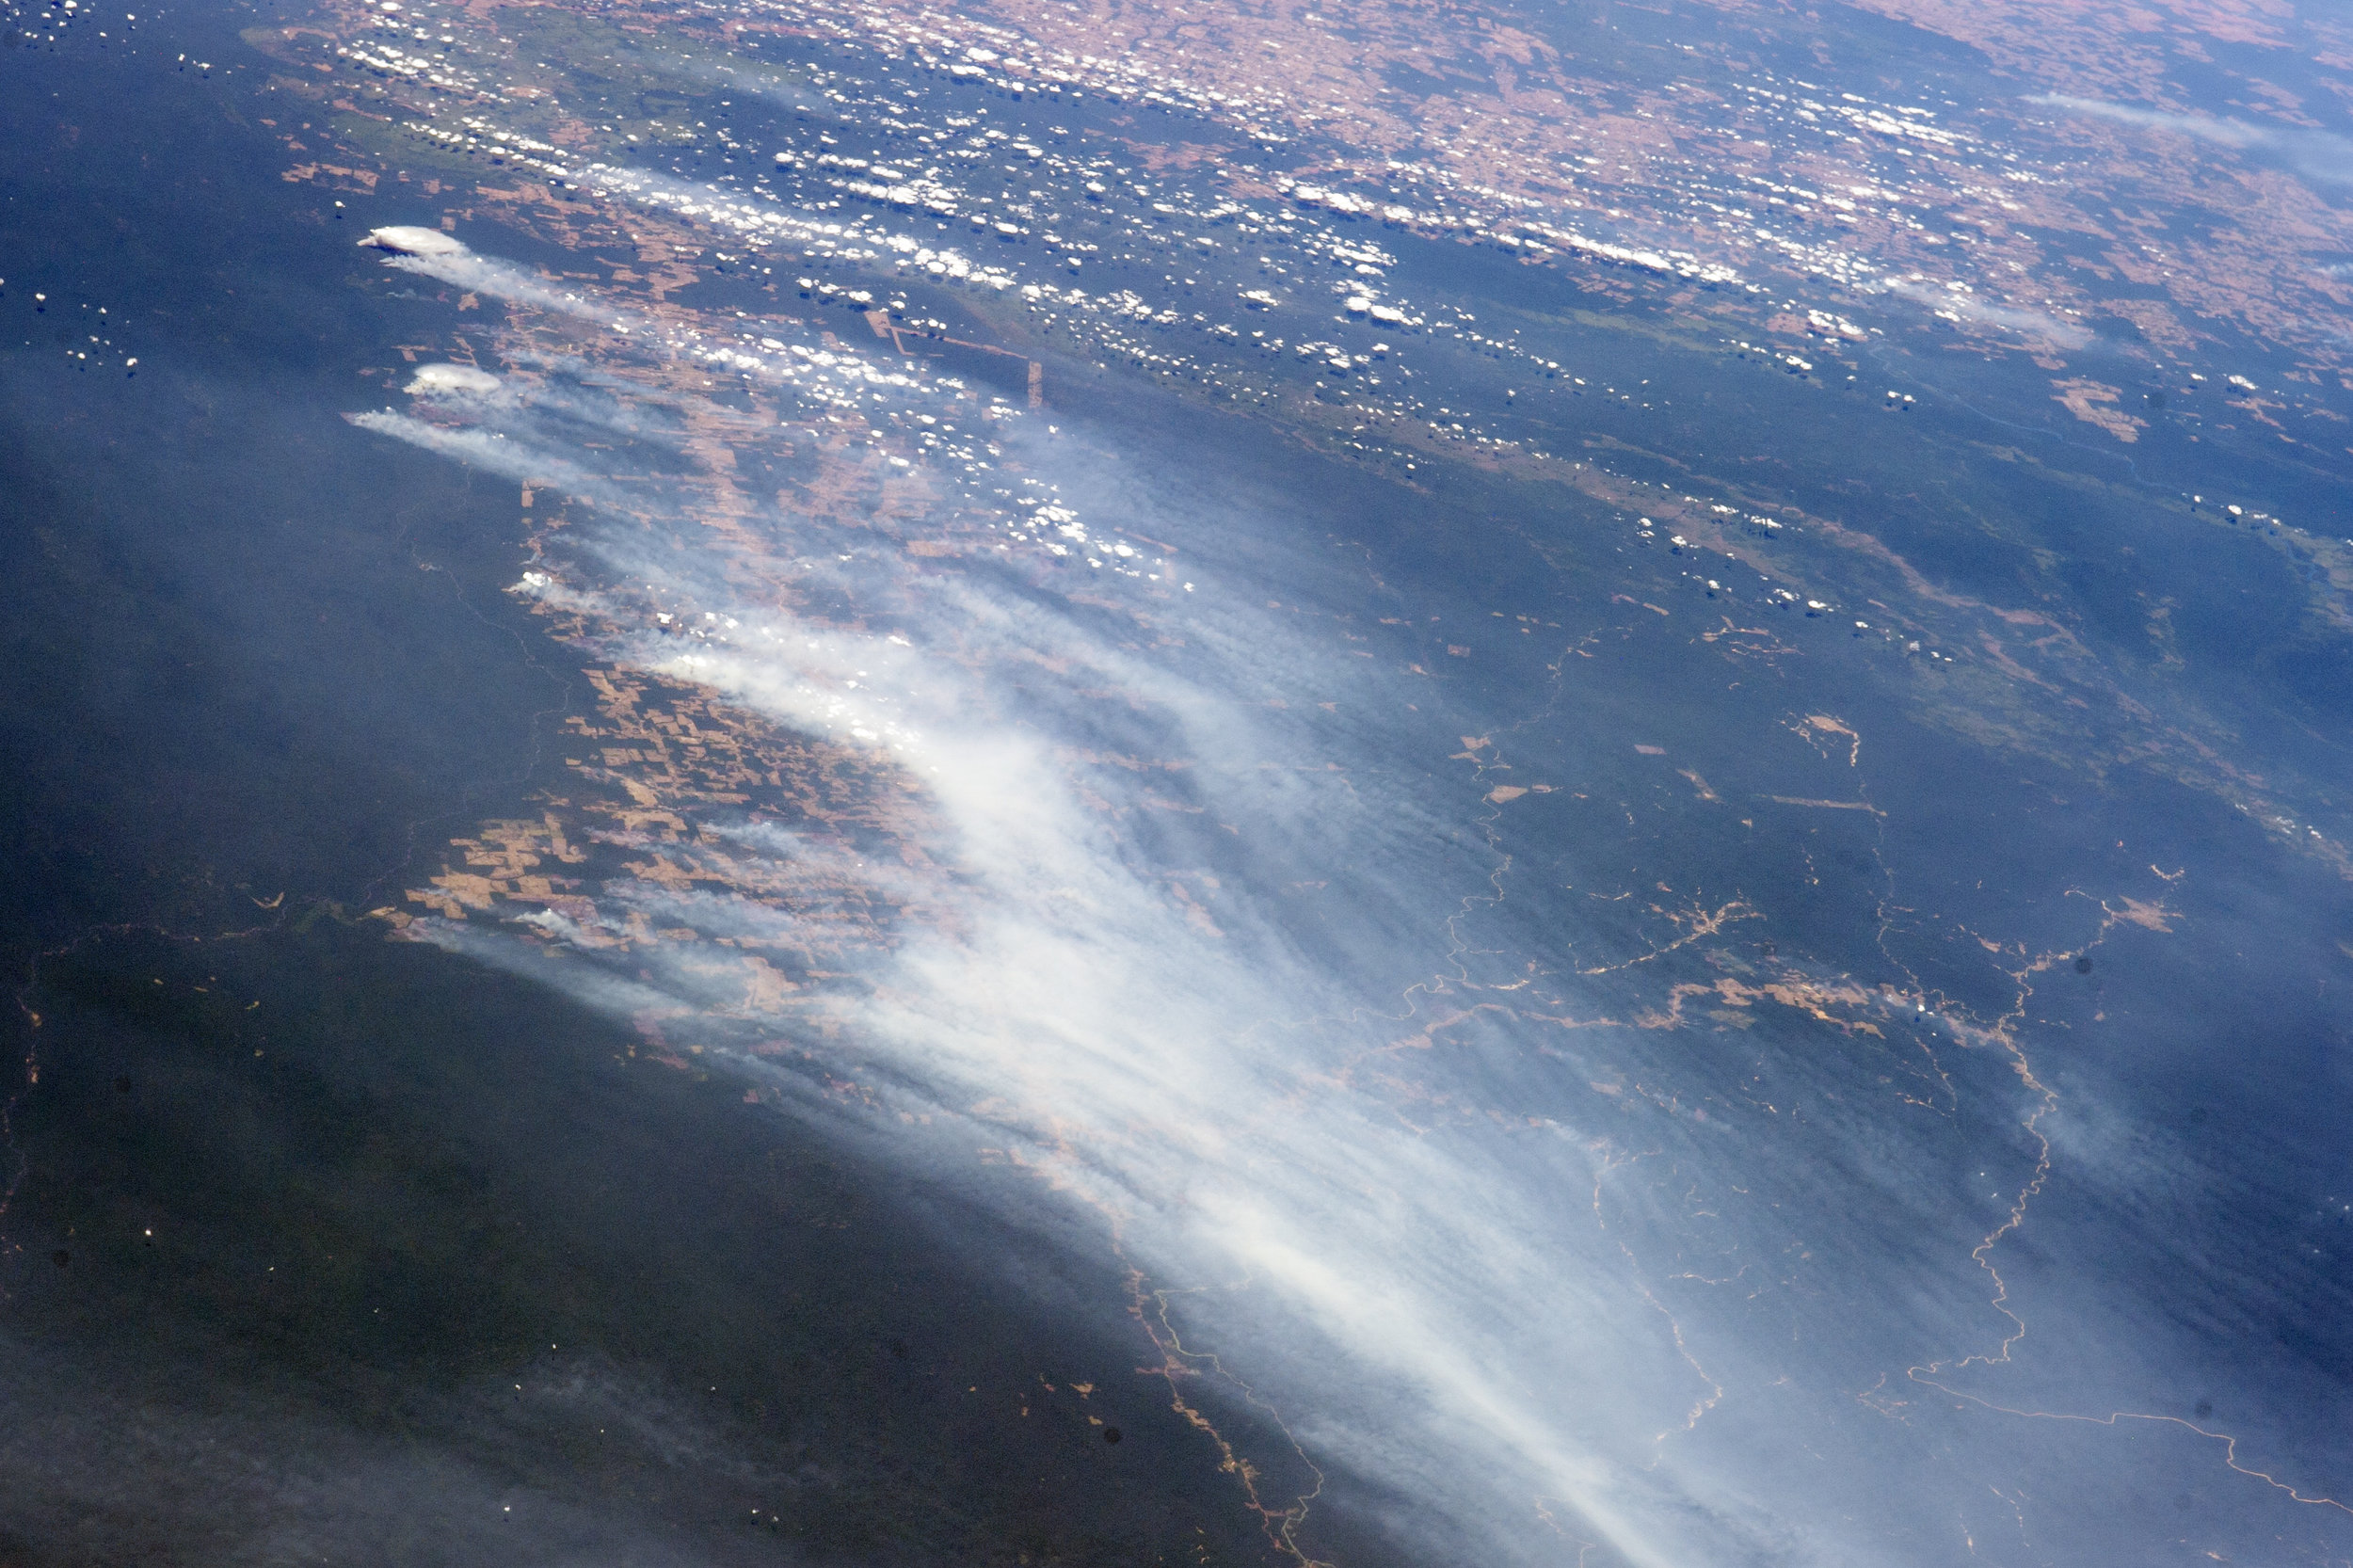 Amazon fires seen from space, August 2019